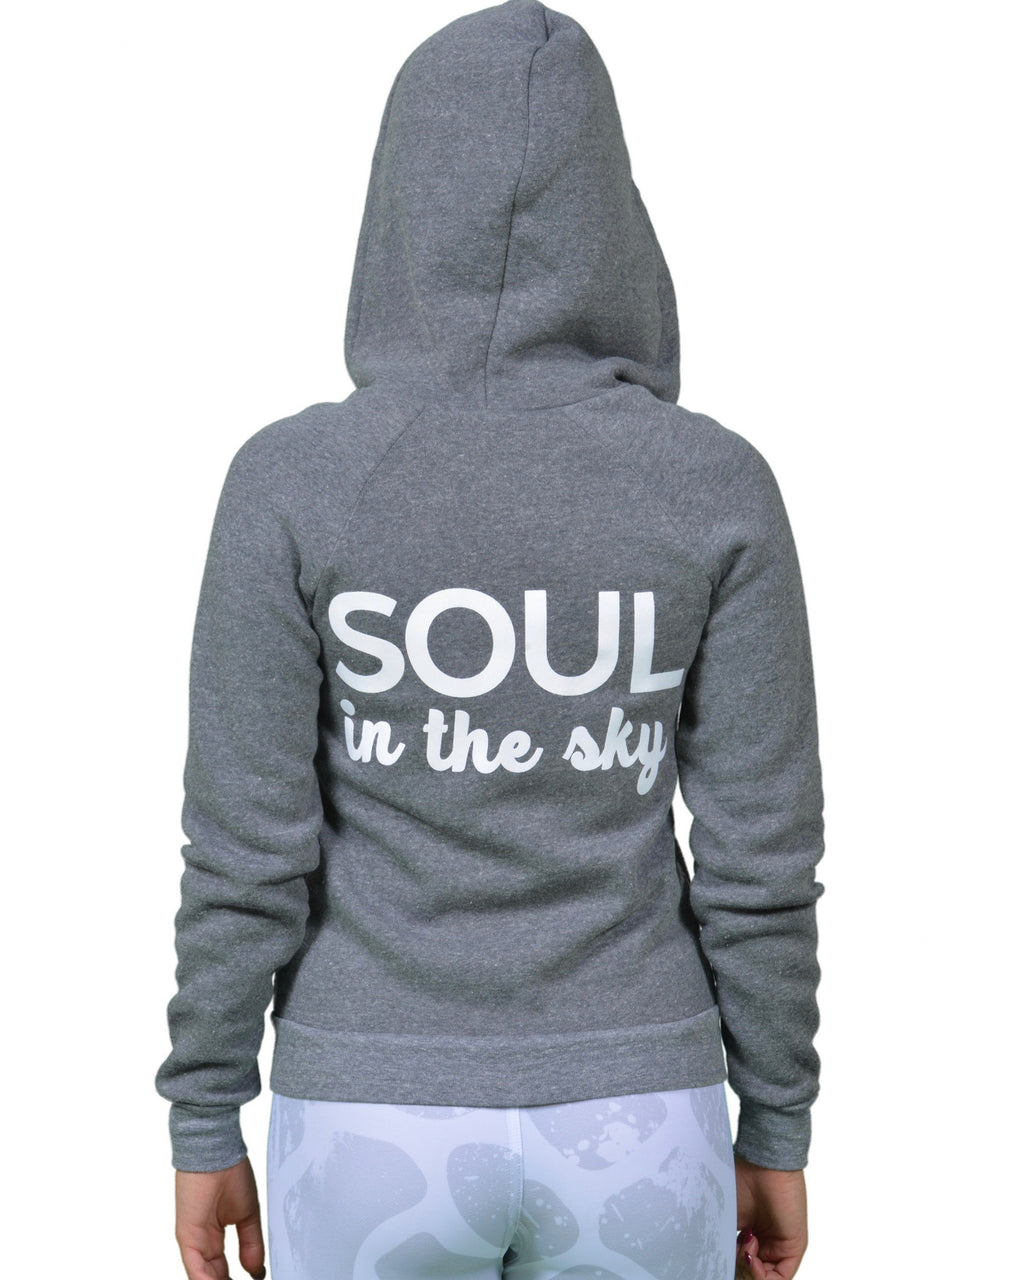 Women's Soul In The Sky Hoodie - Final Sale!